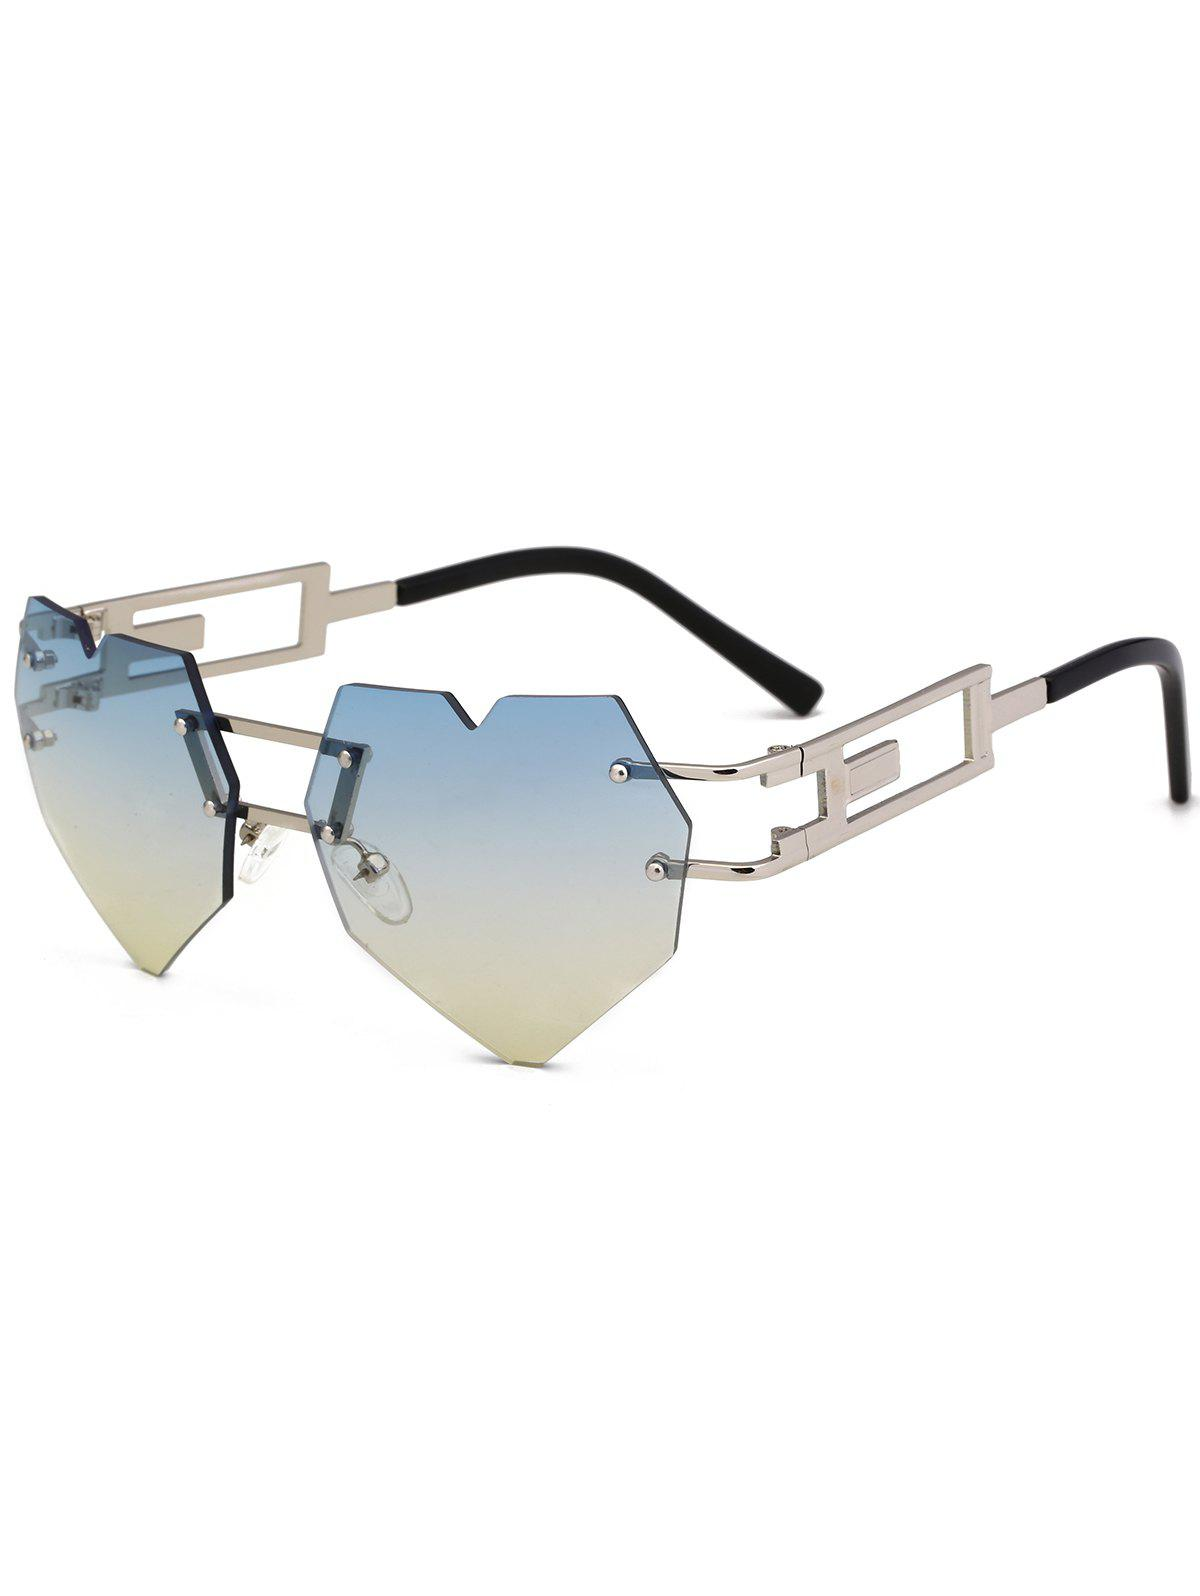 Outdoor Love Heart Decorated Hollow Frame Rimless Sunglasses - LIGHT BLUE